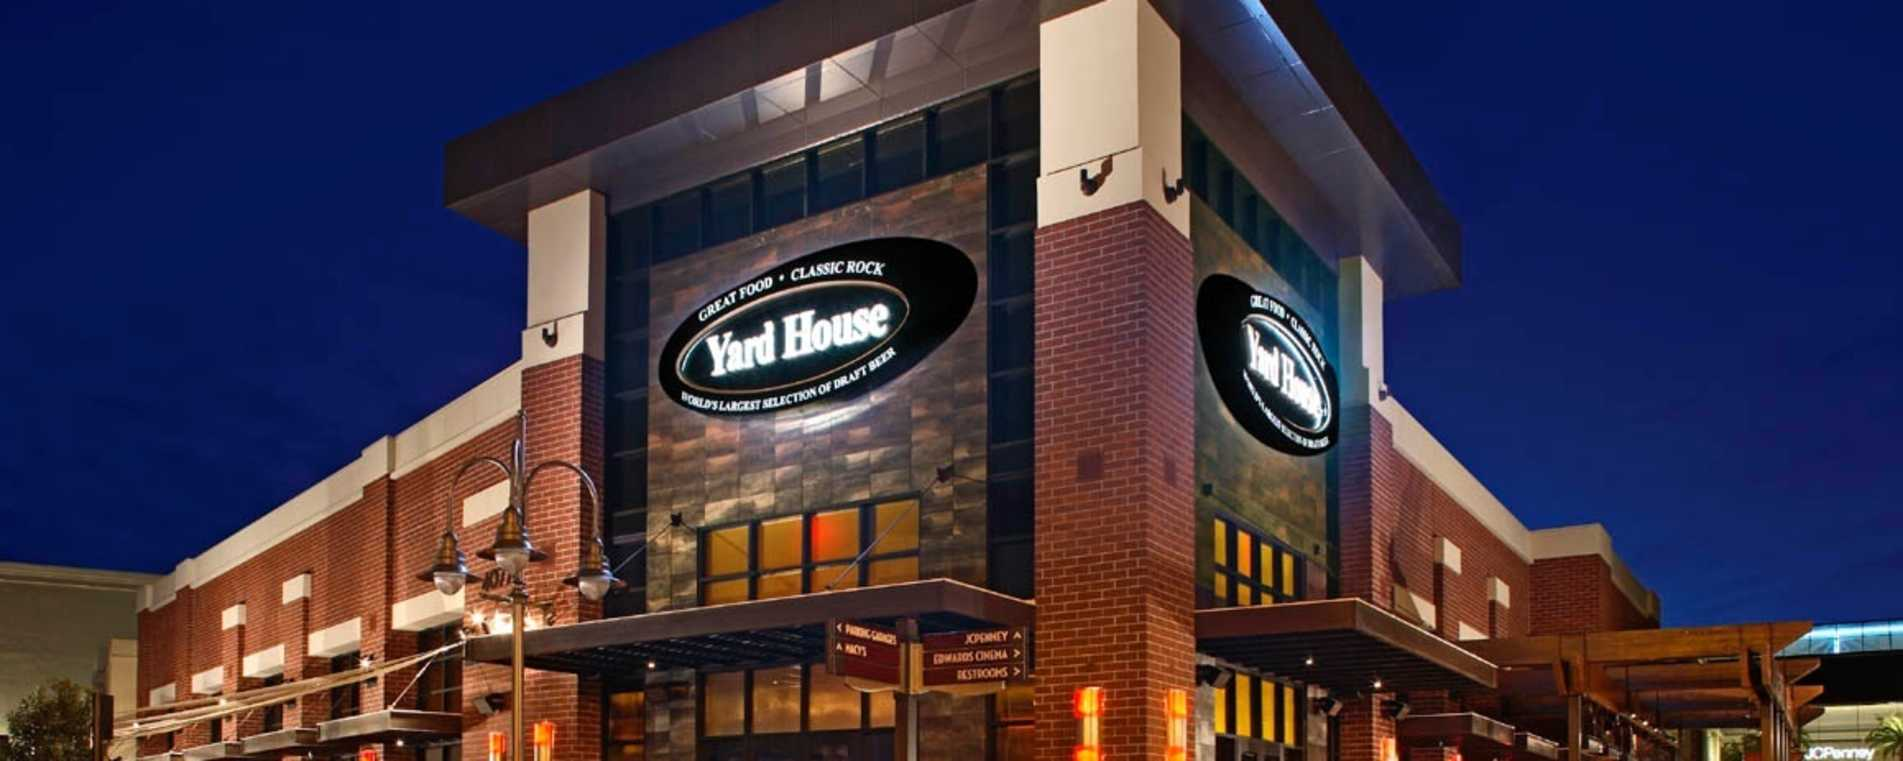 Yard House - Temecula